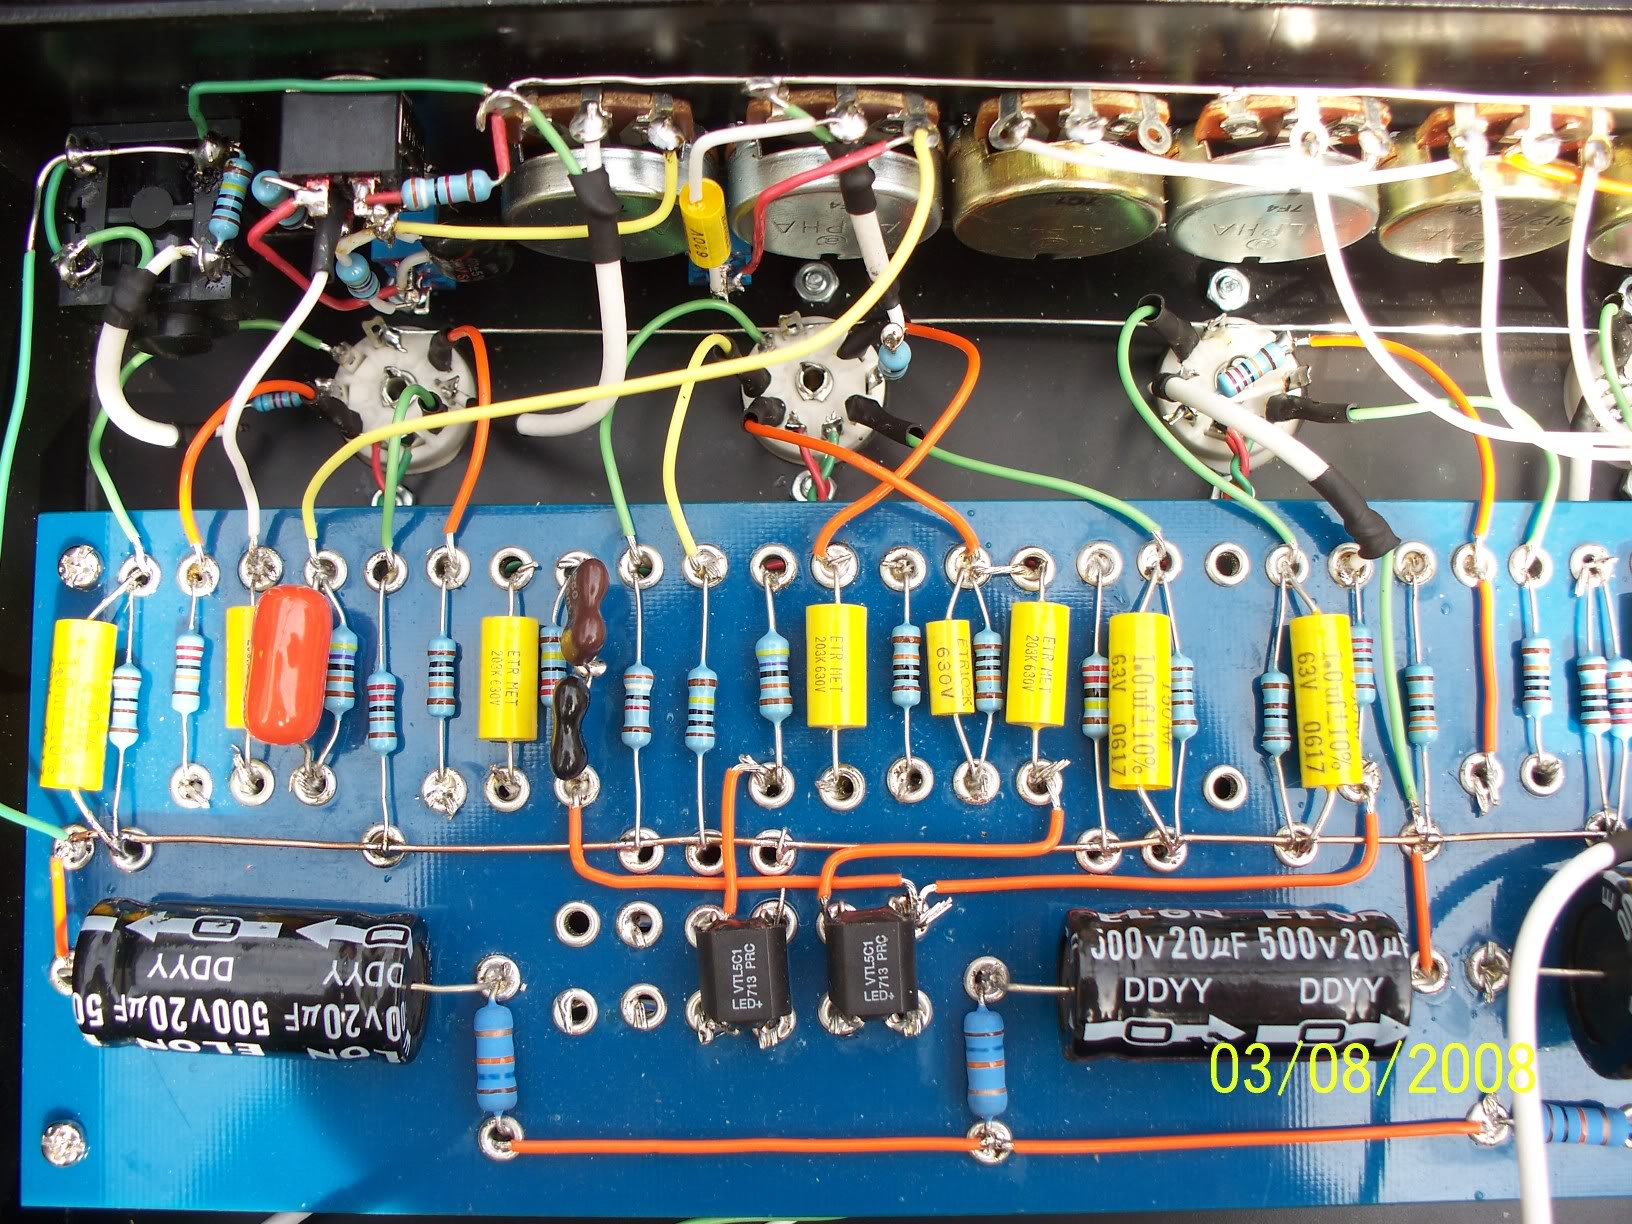 5w Soldano Slo Diy Fever Circuits Gt Making A Homemade Power Amplifier Pcb Layout Included Preamp Circuit